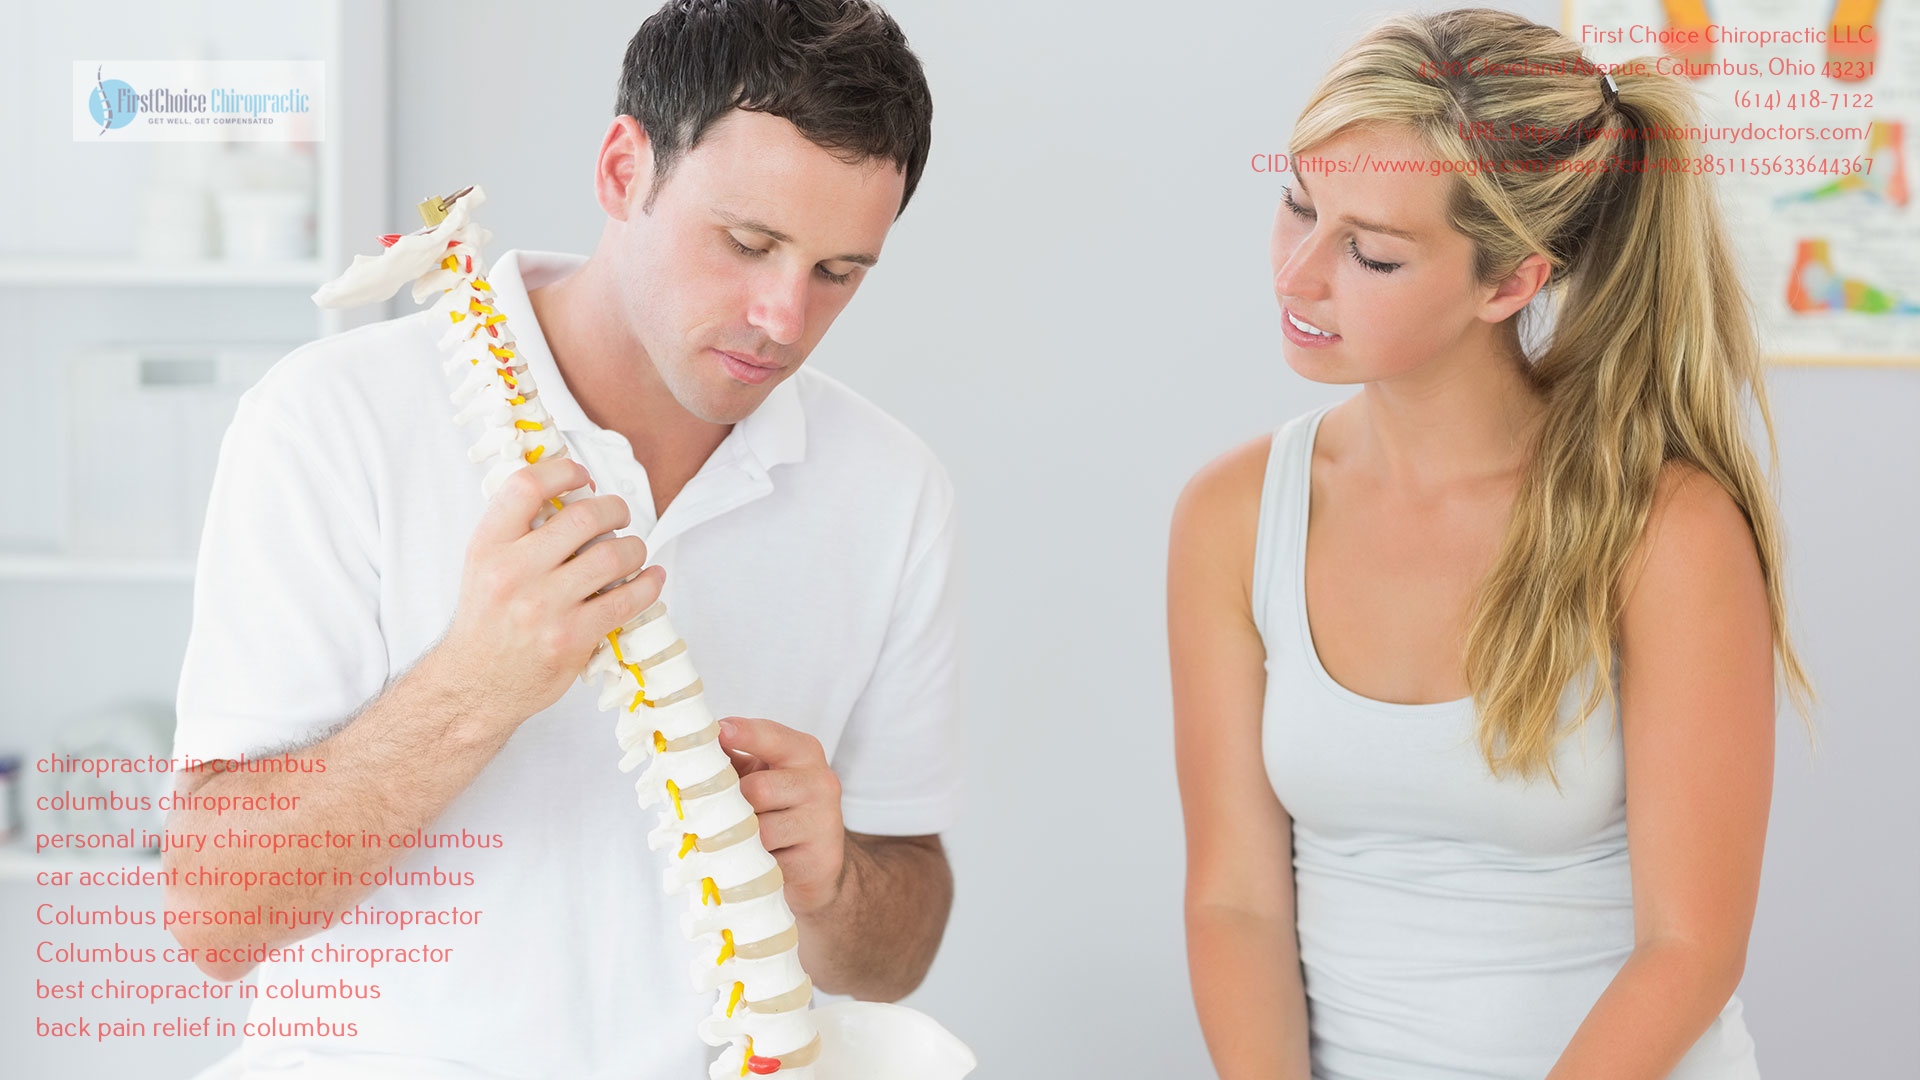 First Choice Chiropractic LLC Explains the Type of Services They Deliver